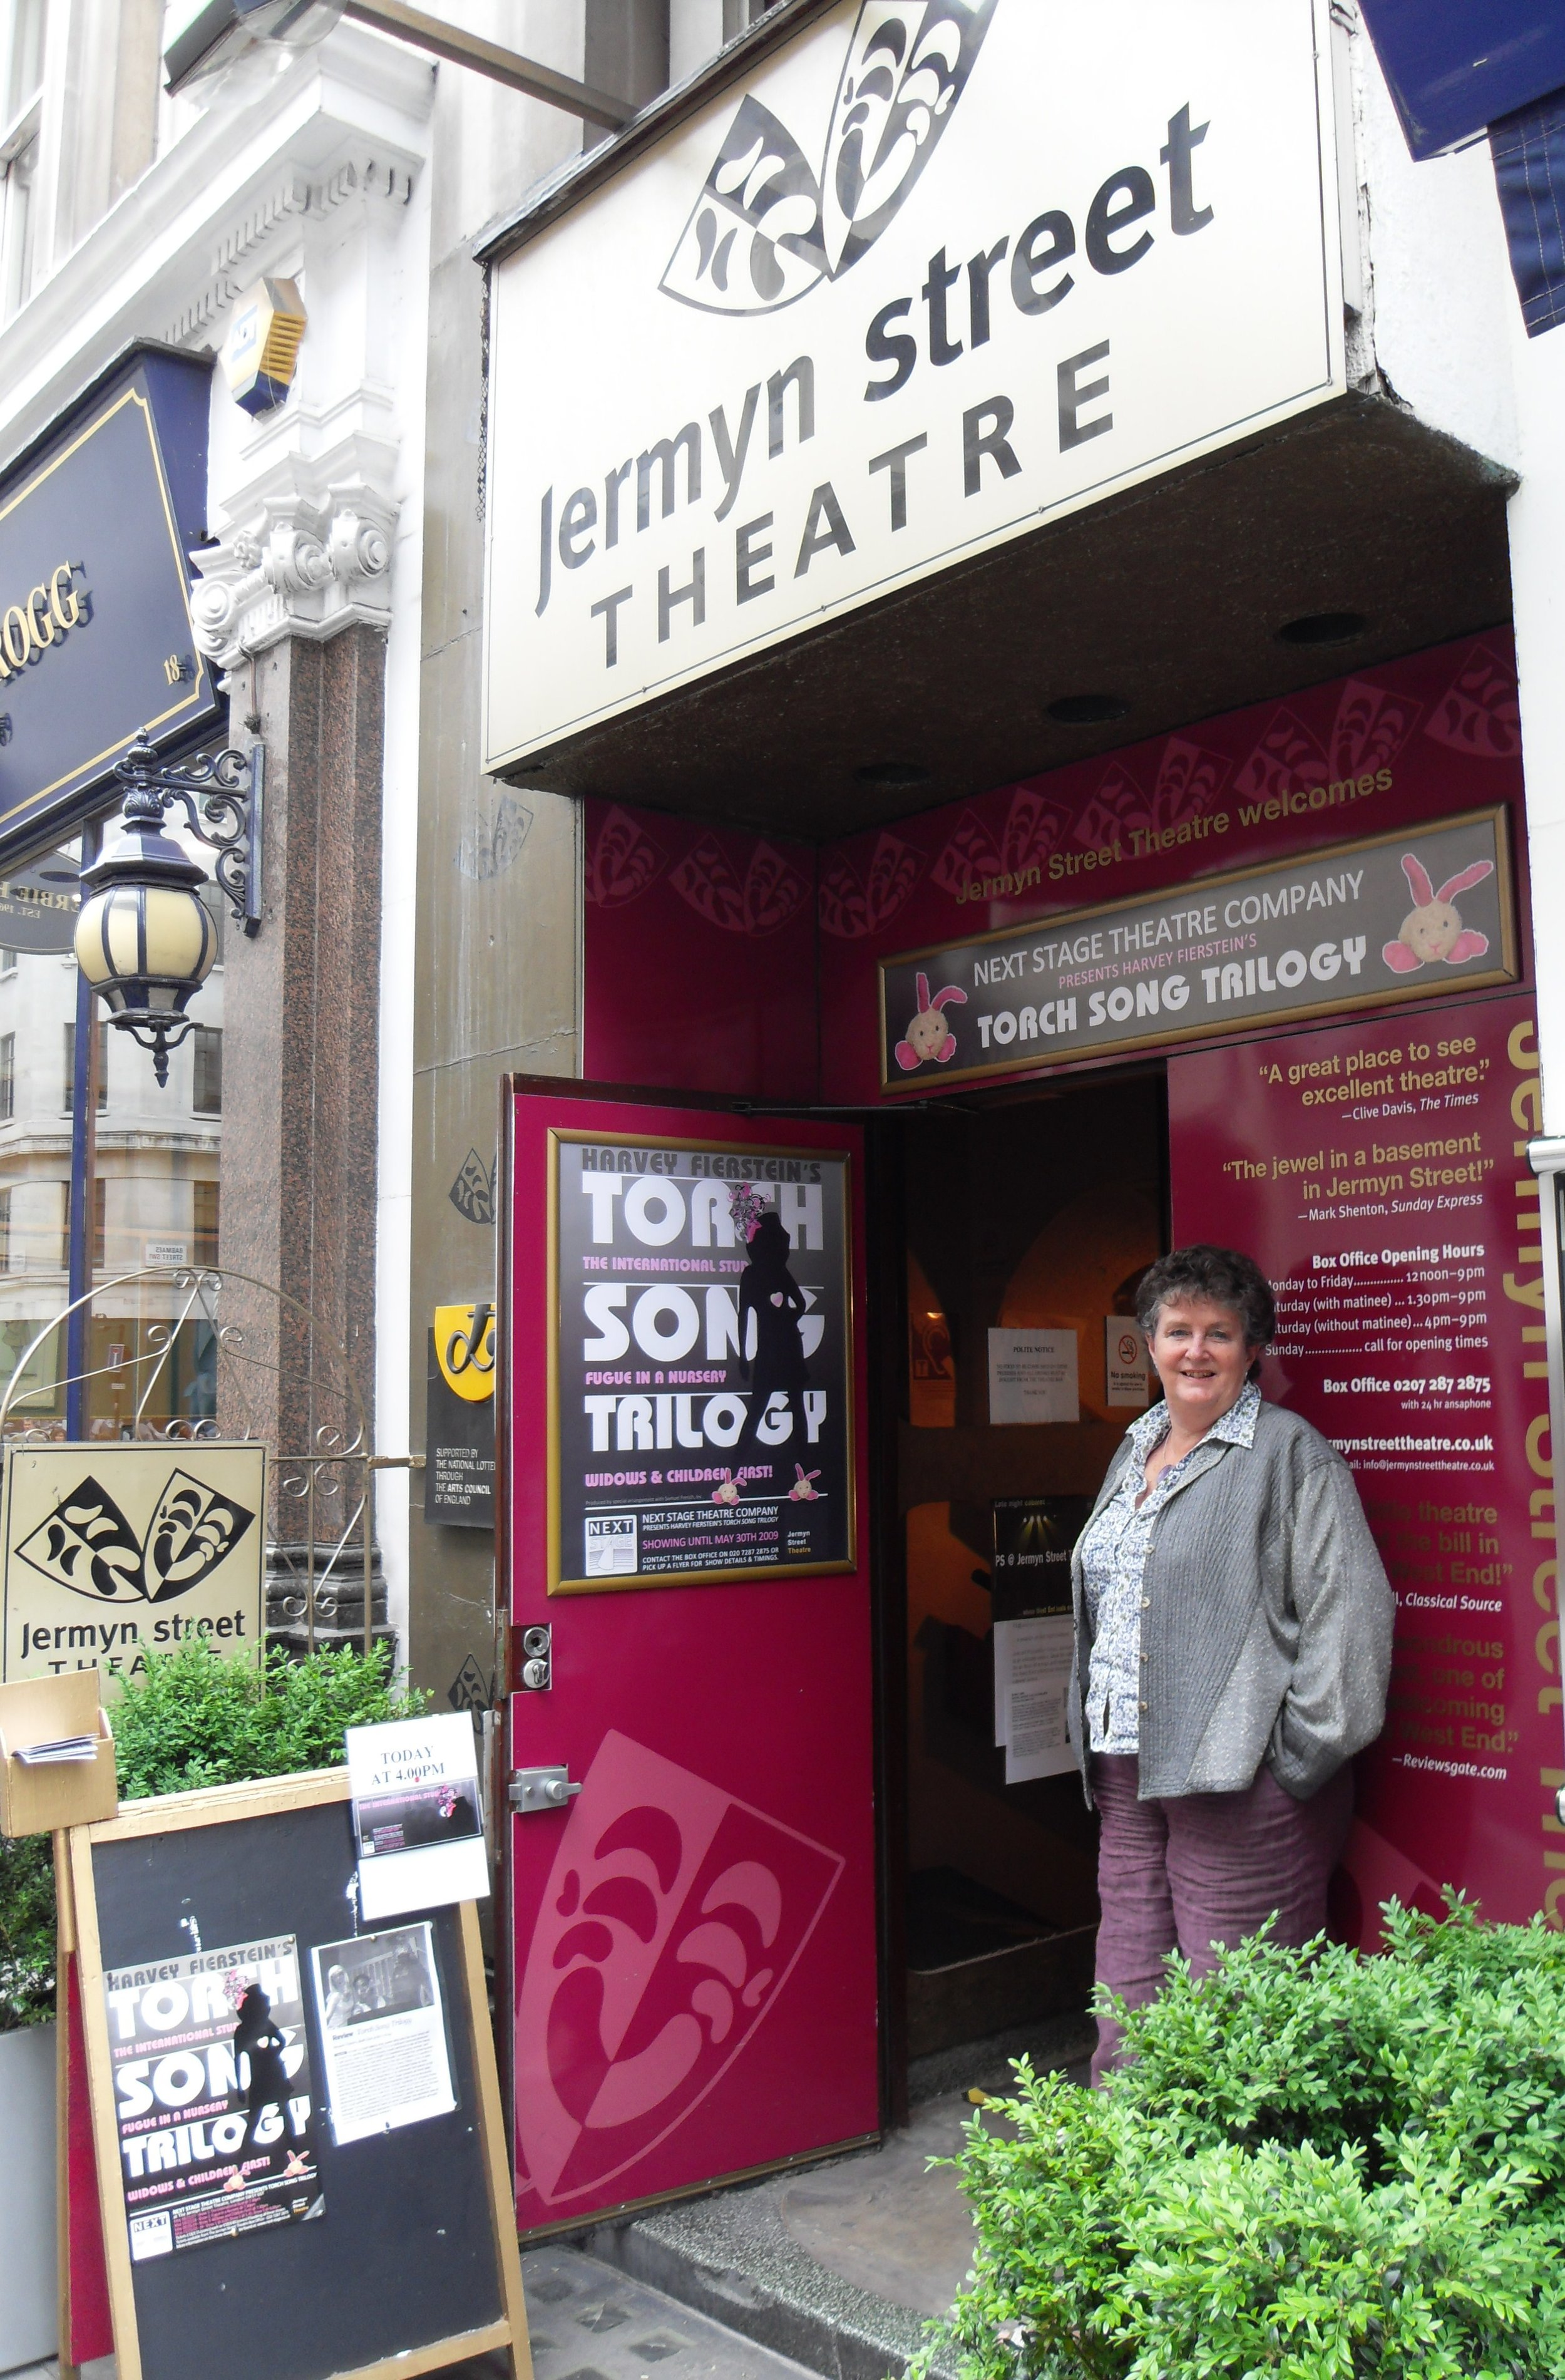 The entrance to Jermyn Street Theatre